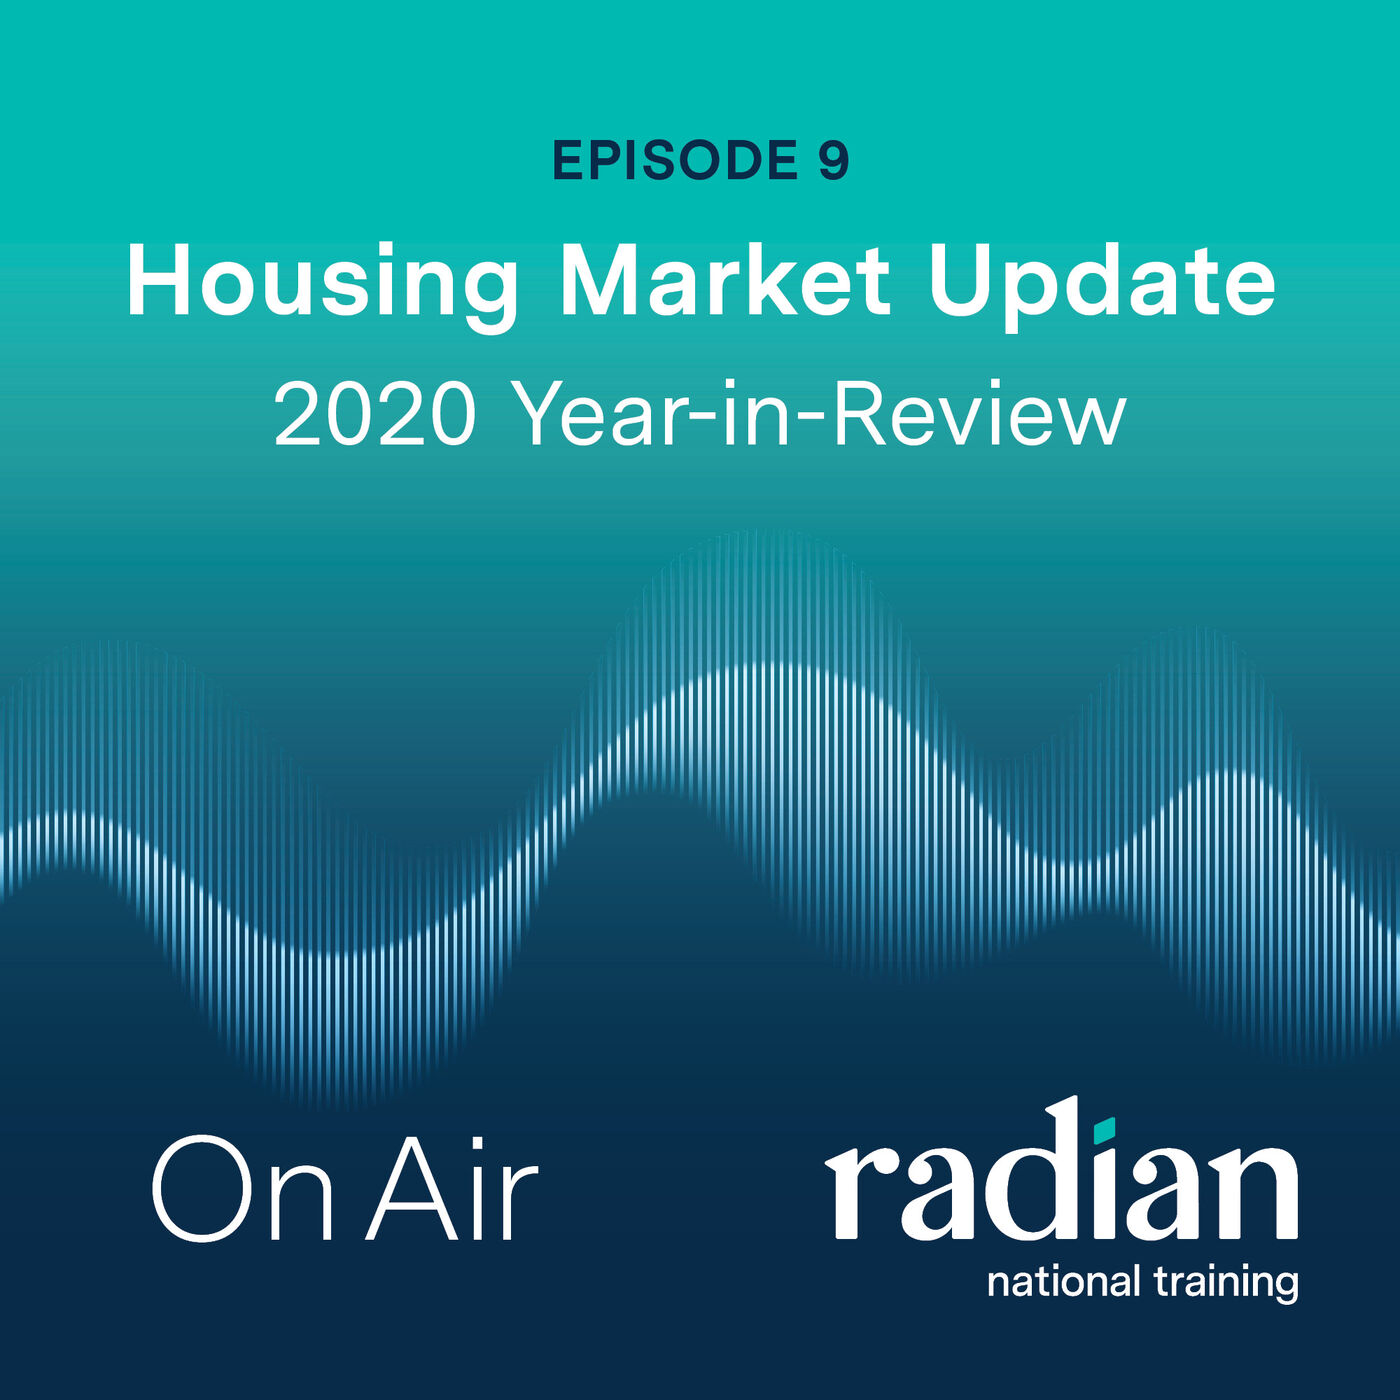 Housing Market Update: 2020 Year-in-Review